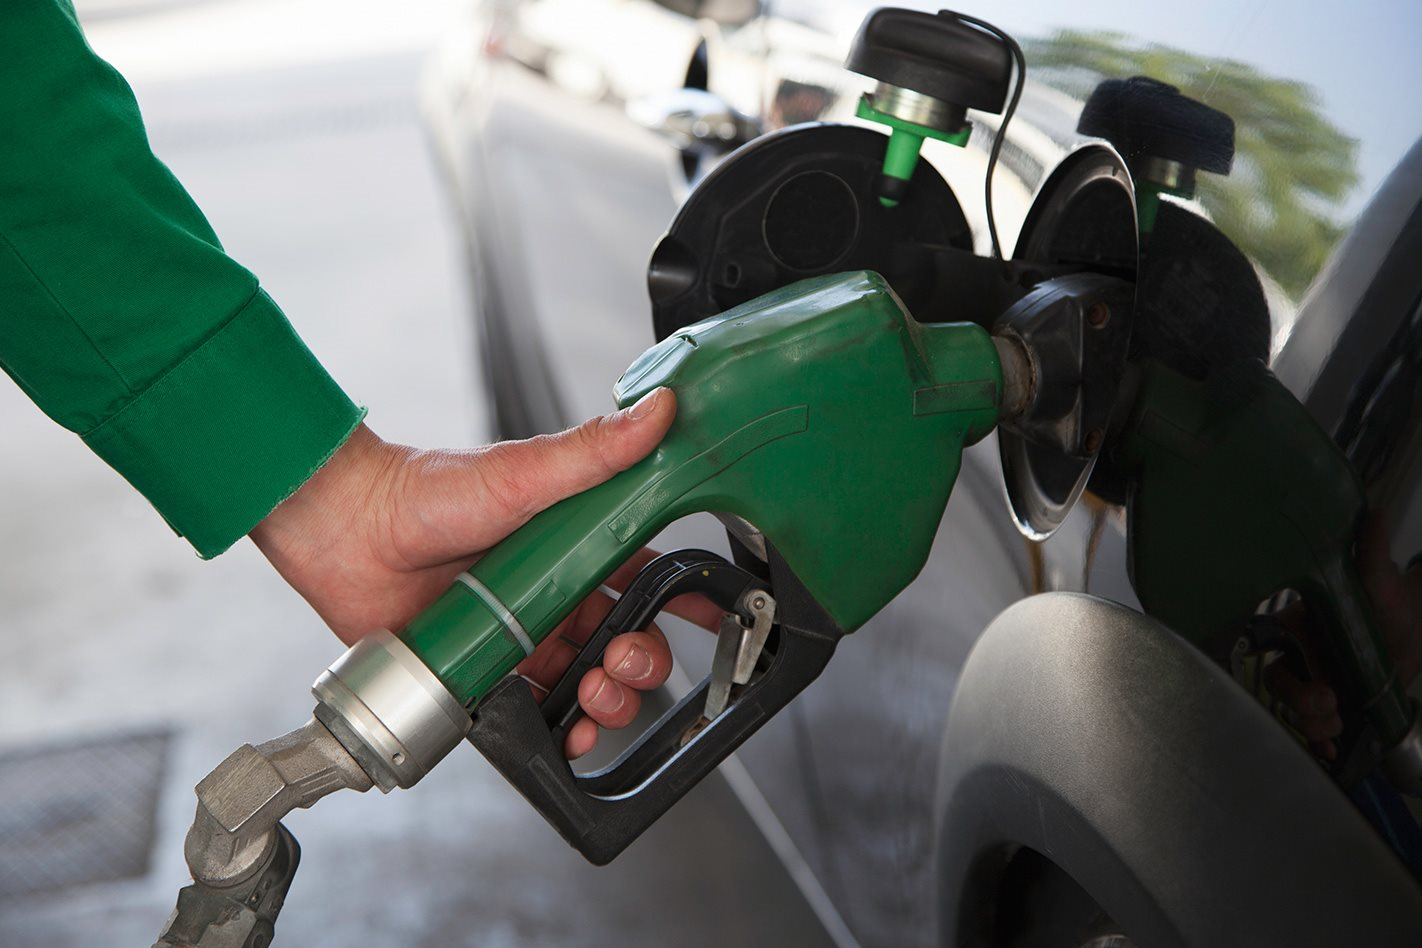 How to beat the petrol price cycle